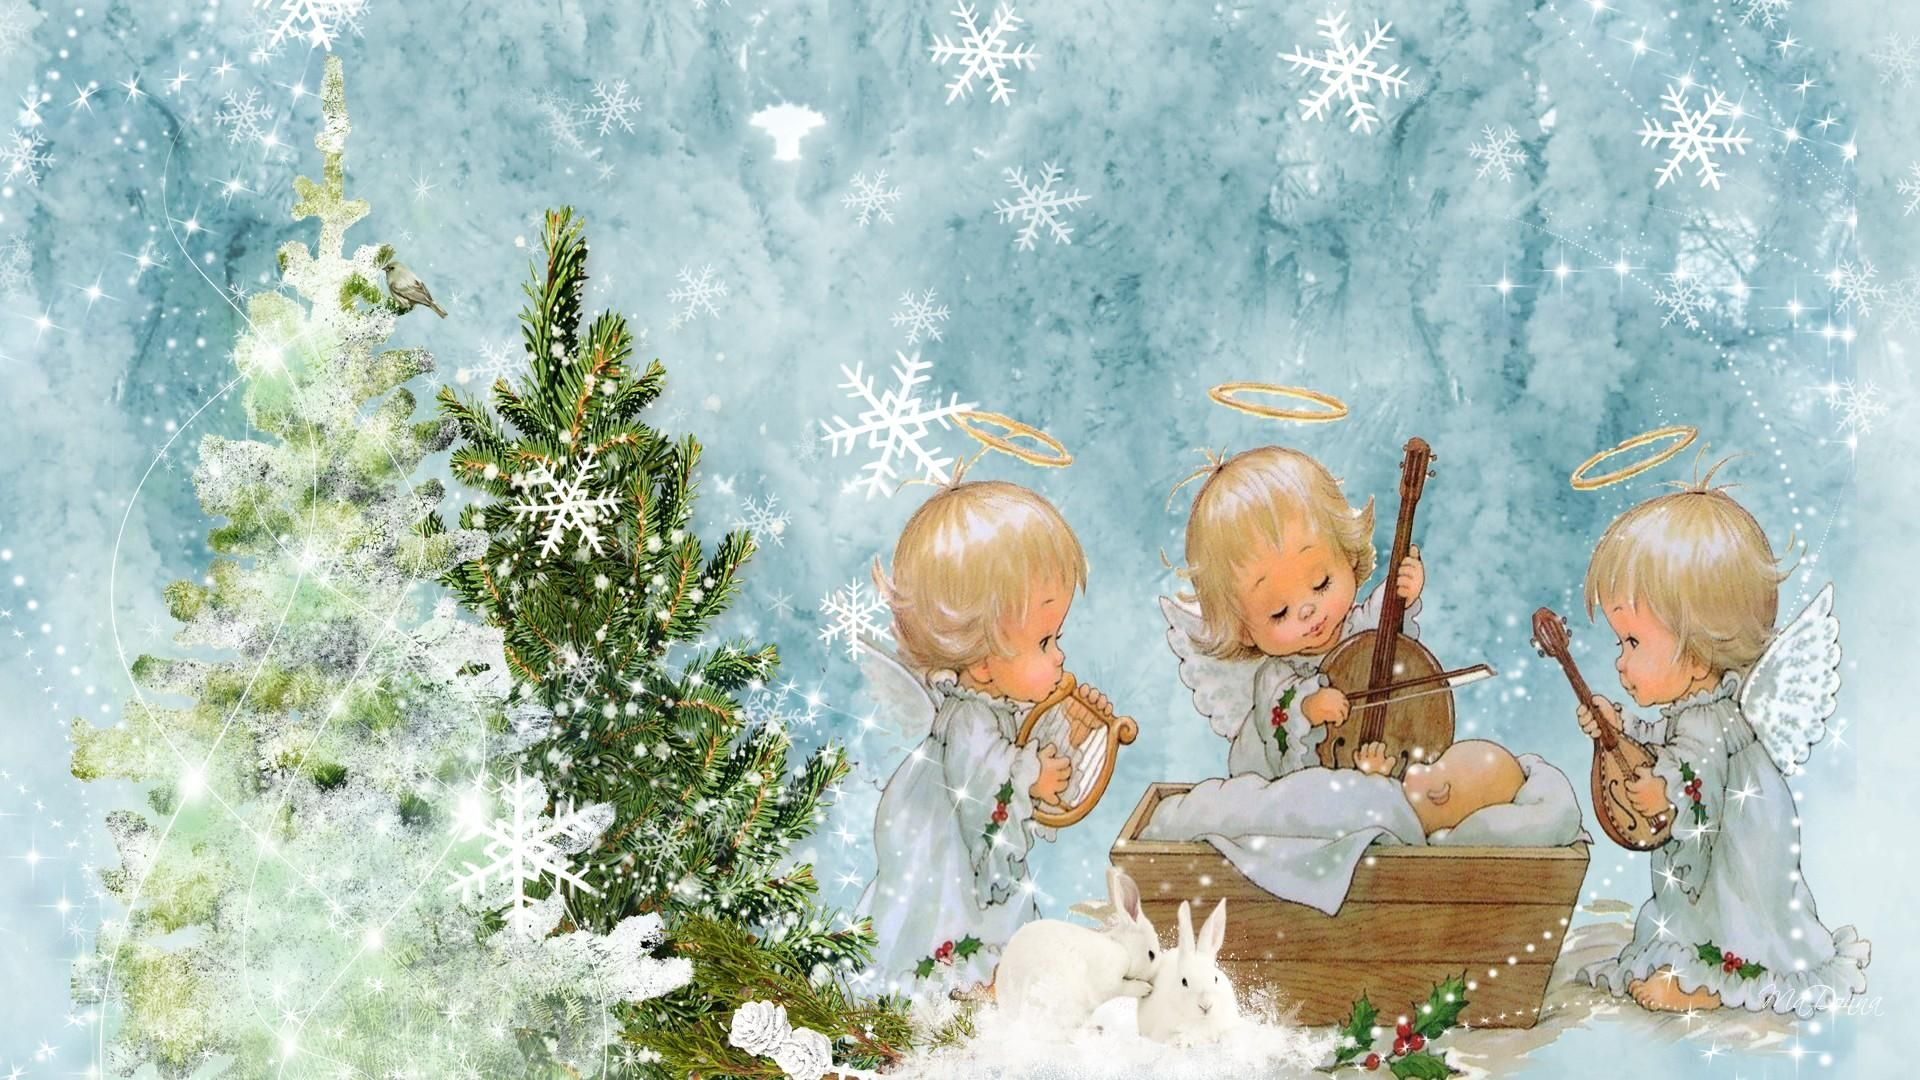 Image Gallery For Angel Baby Christmas Wallpaper